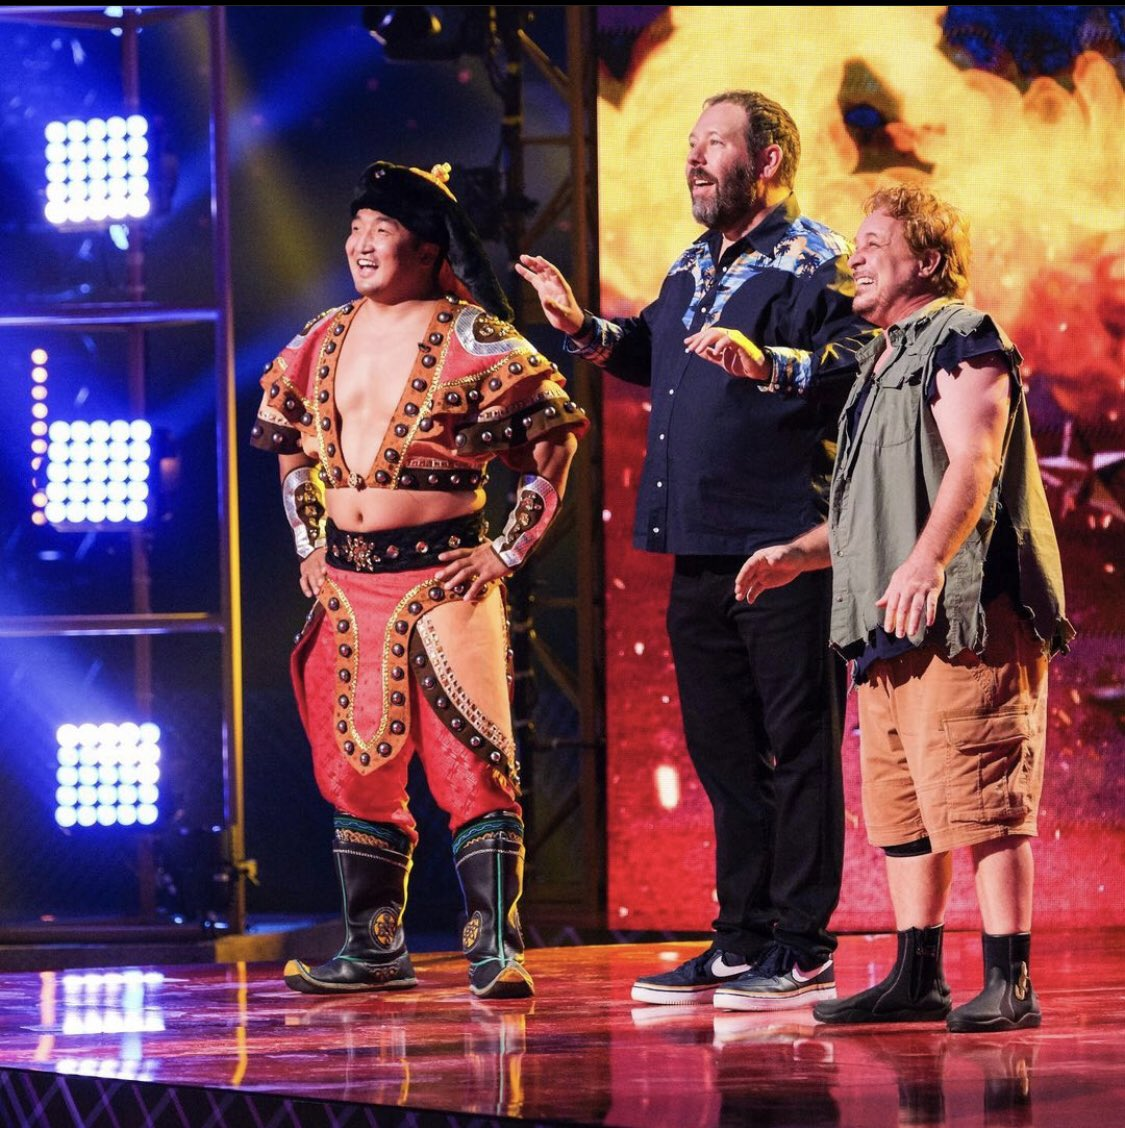 @bertkreischer Bobby Lee and Joey Diaz's appearance was an unexpected twist   #GoBigShow